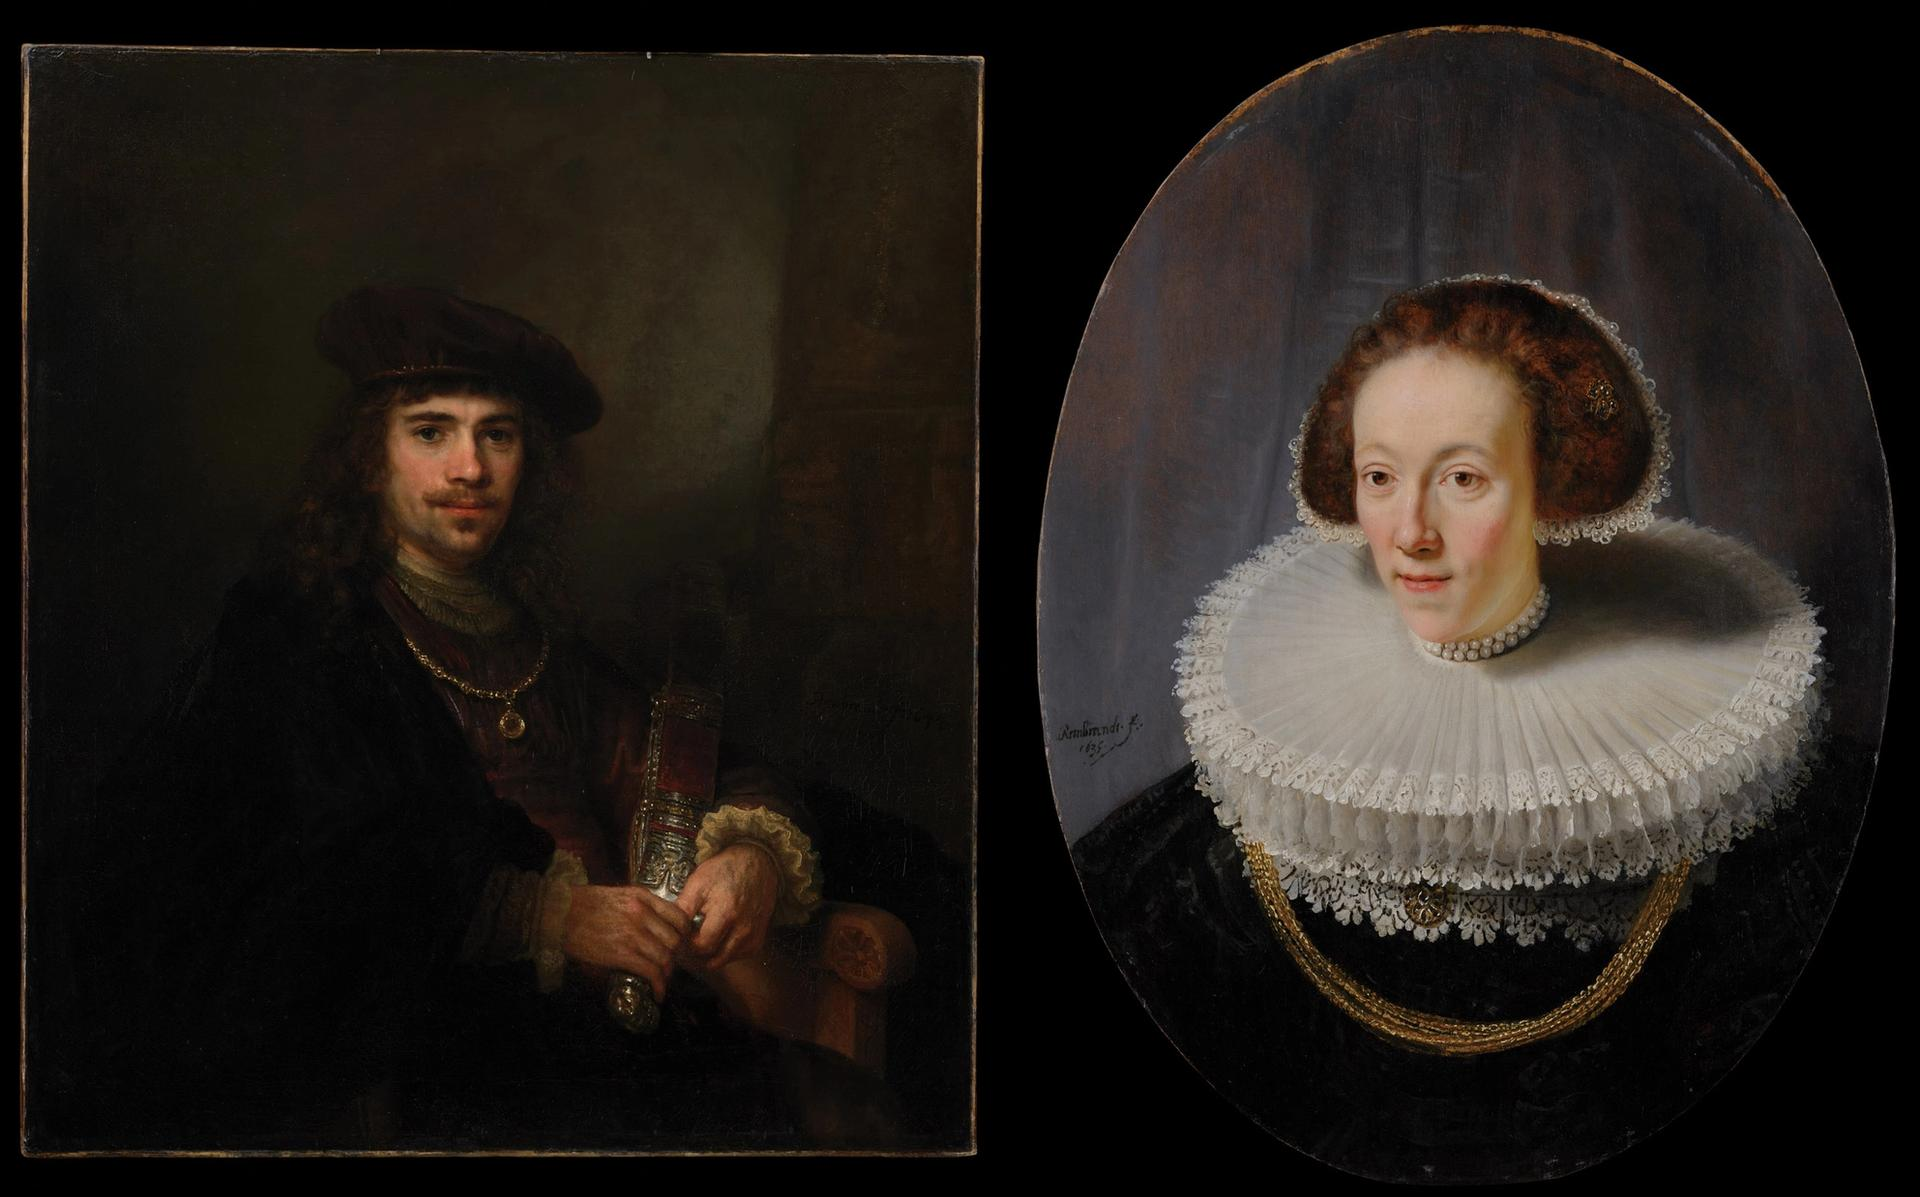 Man with a Sword (around 1640-44) and the Portrait of Petronella Buys (1635) The Leiden Collection